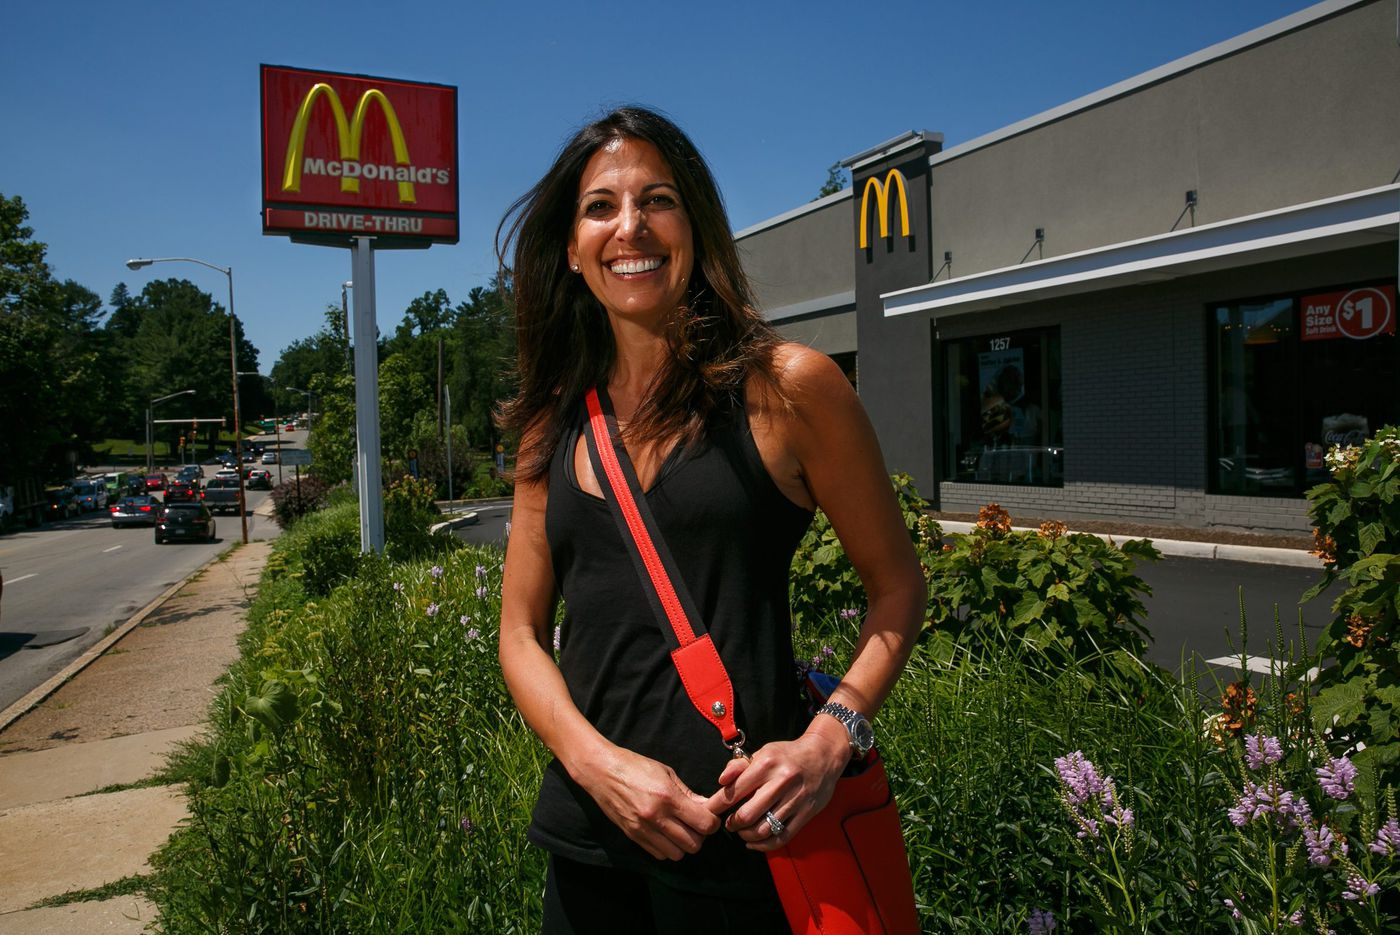 With 30-day McDonald's diet, Drexel dietitian shares how to eat healthy at fast food restaurants